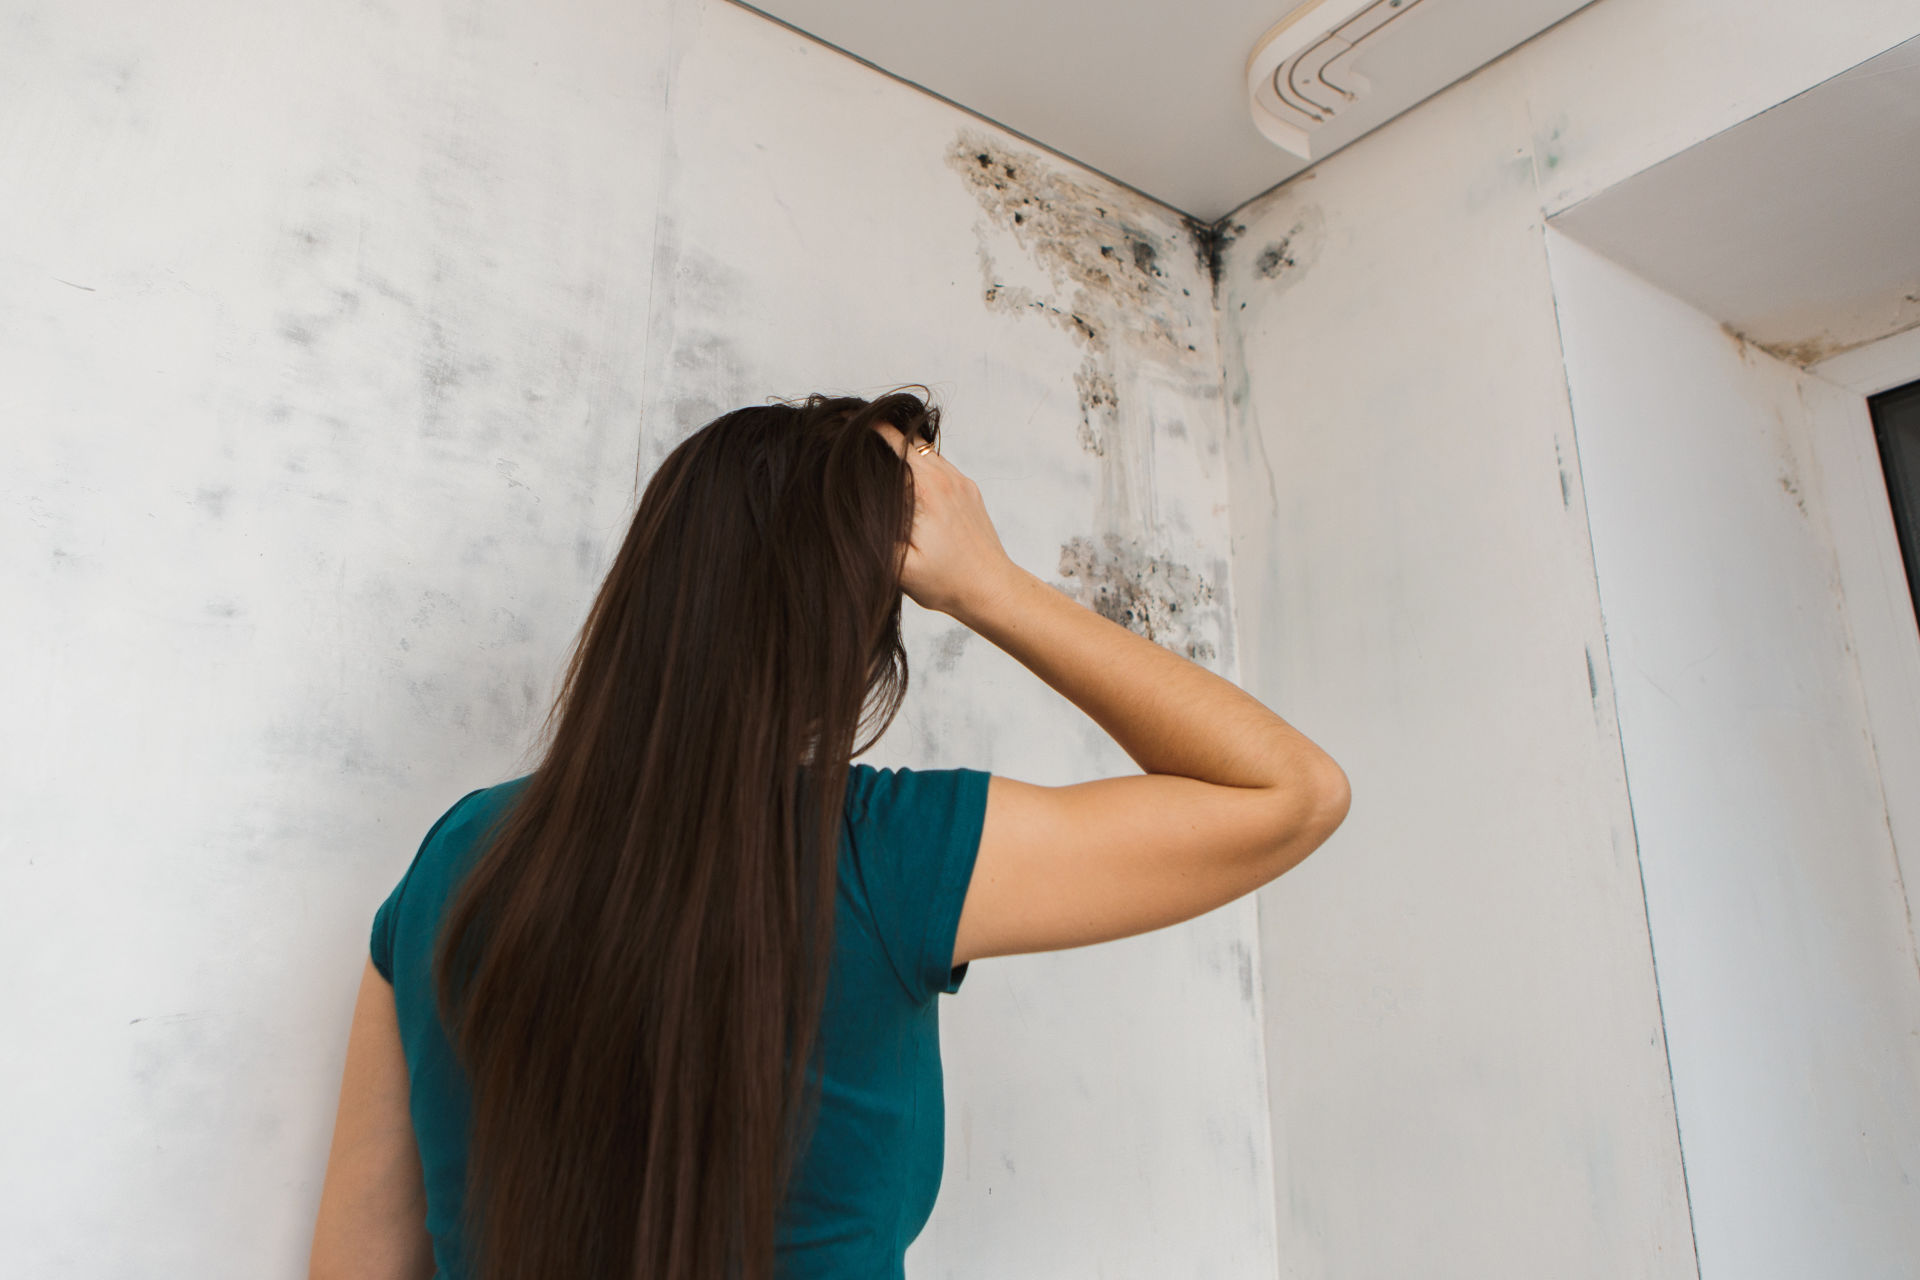 This Mold House — What Is a Stigmatized Home?